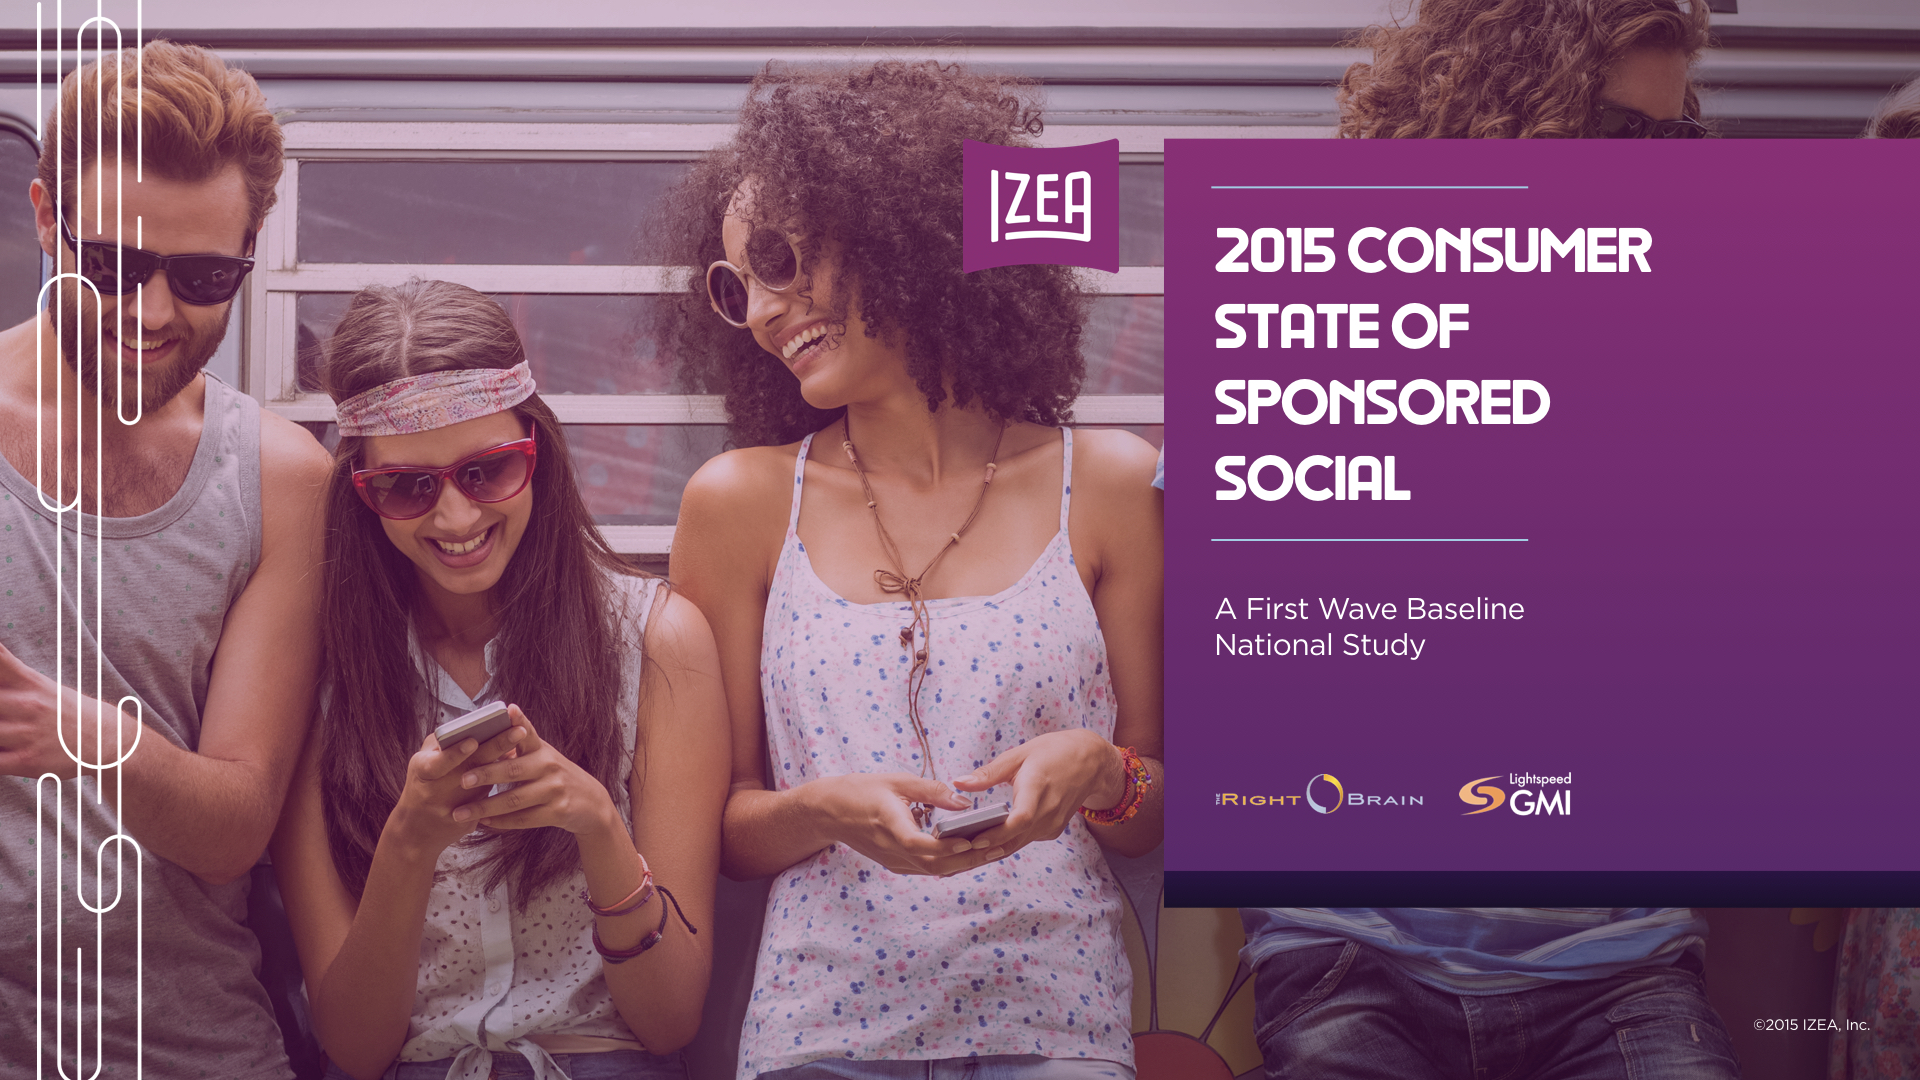 The 2015 Consumer State of Sponsored Social